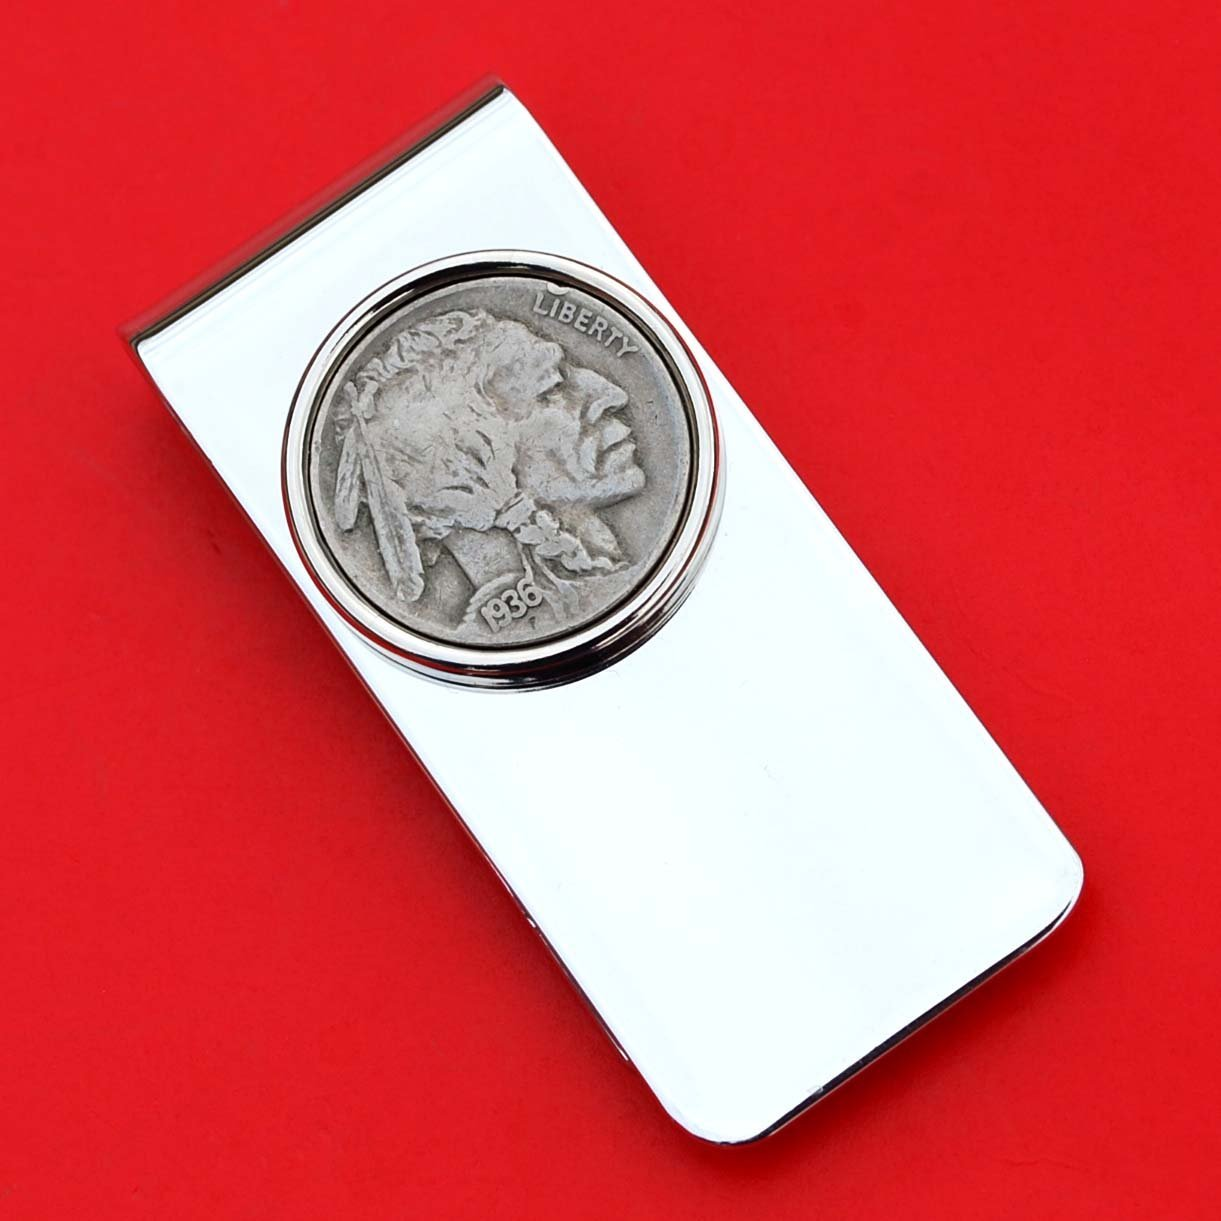 High Quality US 1936 Indian Head Buffalo Nickel 5 Cent Coin Solid Brass Silver Plated Money Clip New